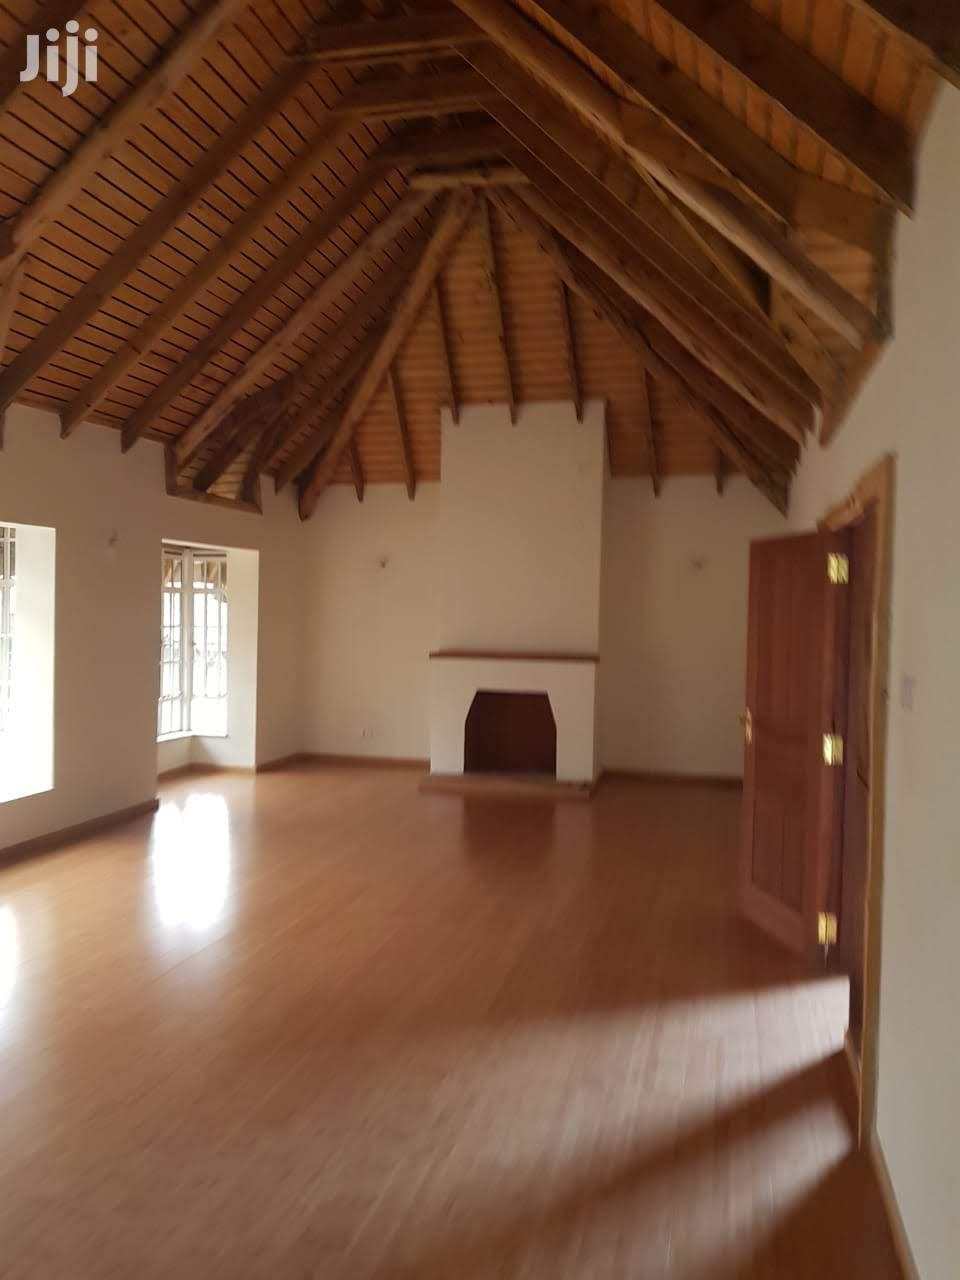 Property World,3/4brs Duplex With Pool,Gym and Very Secure